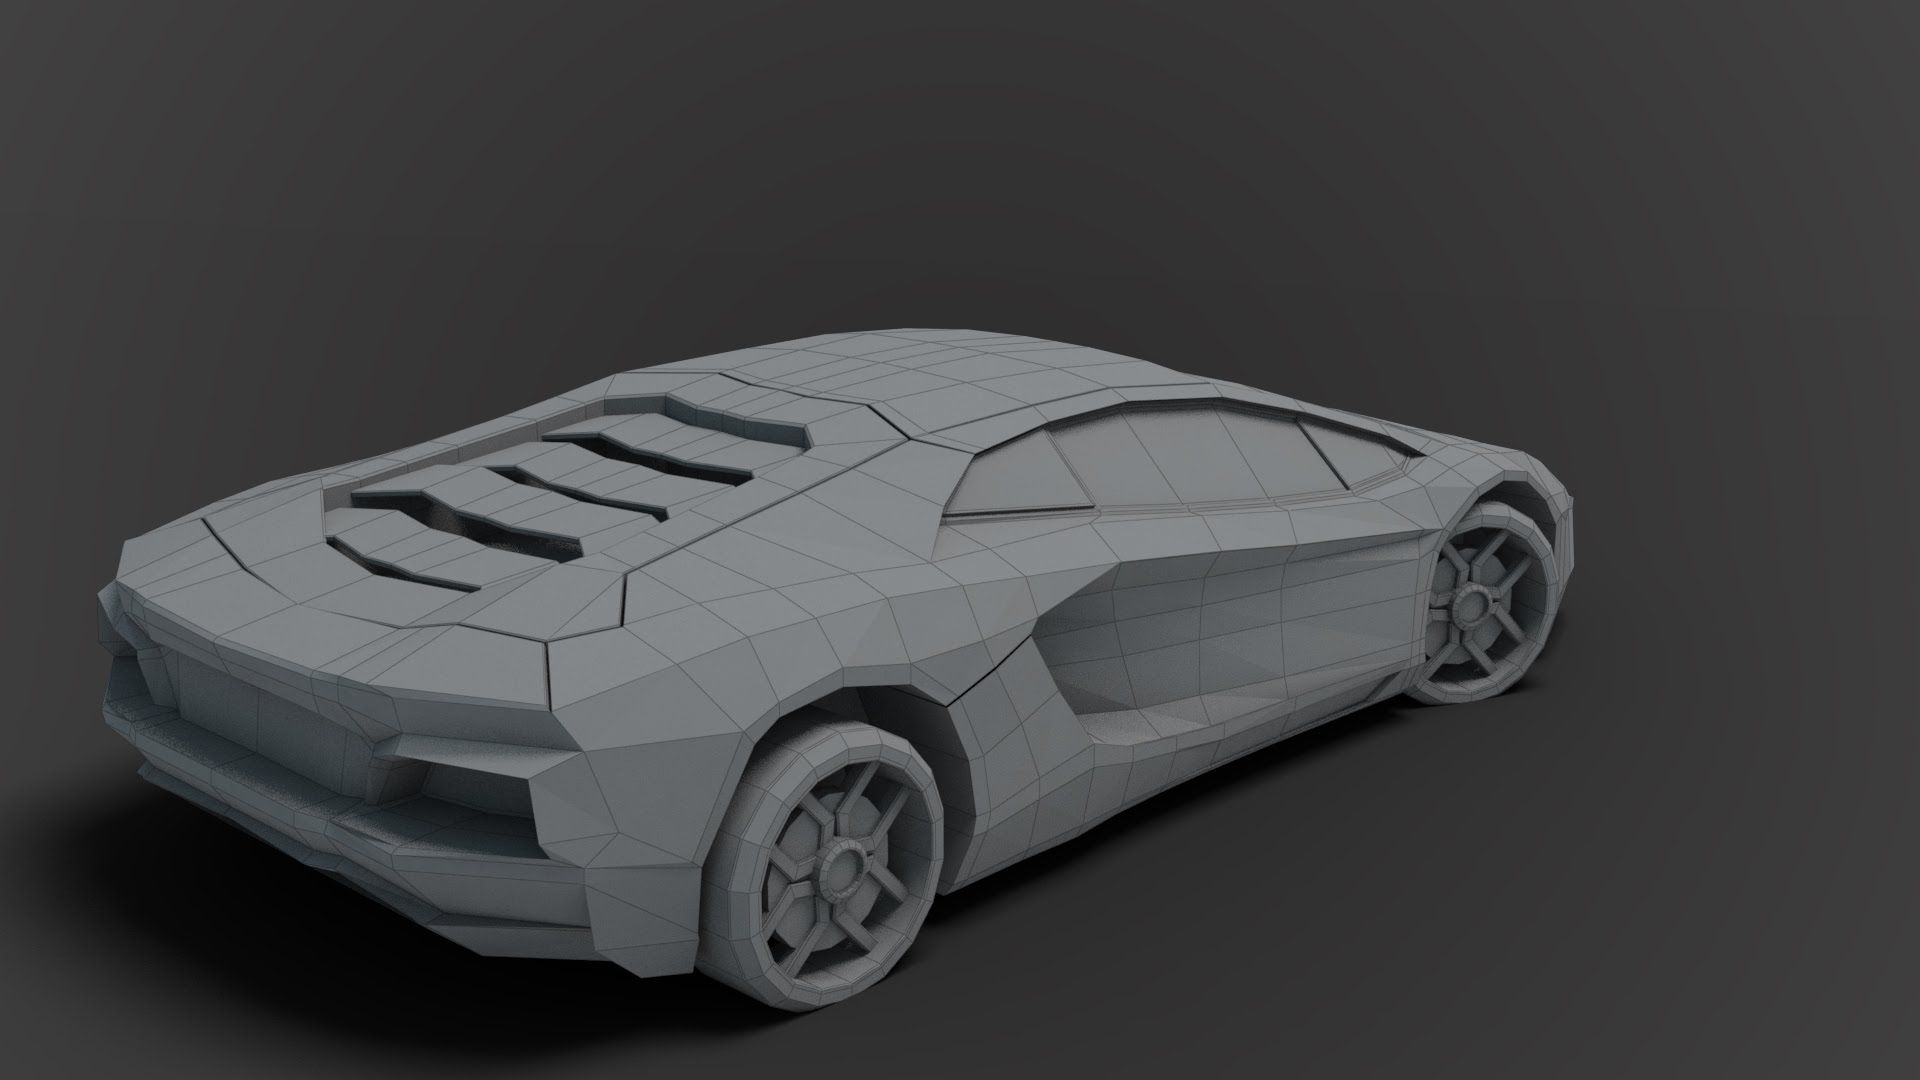 Modeling low poly lamborghini 3ds max beginner tutorial blueprint modeling low poly lamborghini 3ds max beginner tutorial blueprint setup not included note be careful malvernweather Gallery